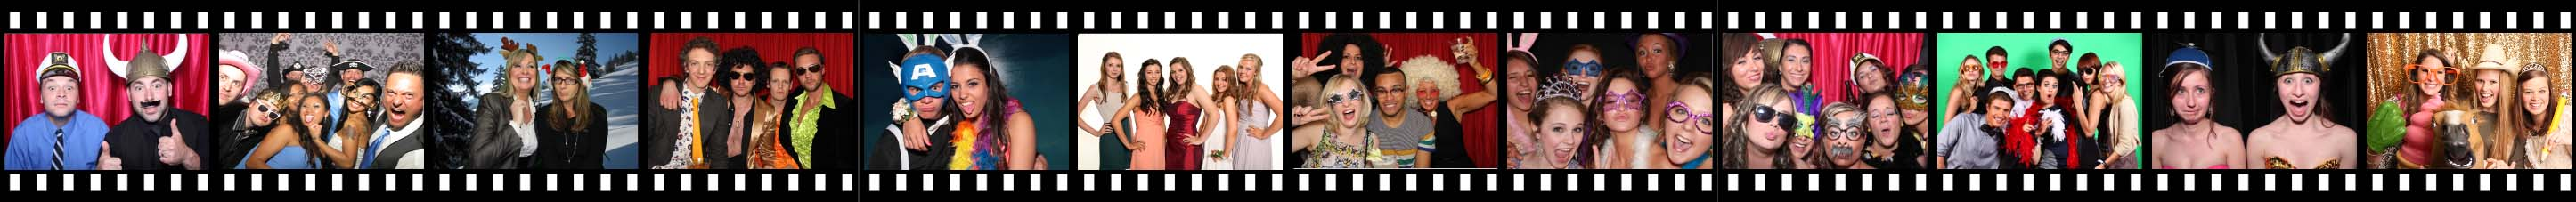 Photo-Booth-Hire-North-East-Cumbria